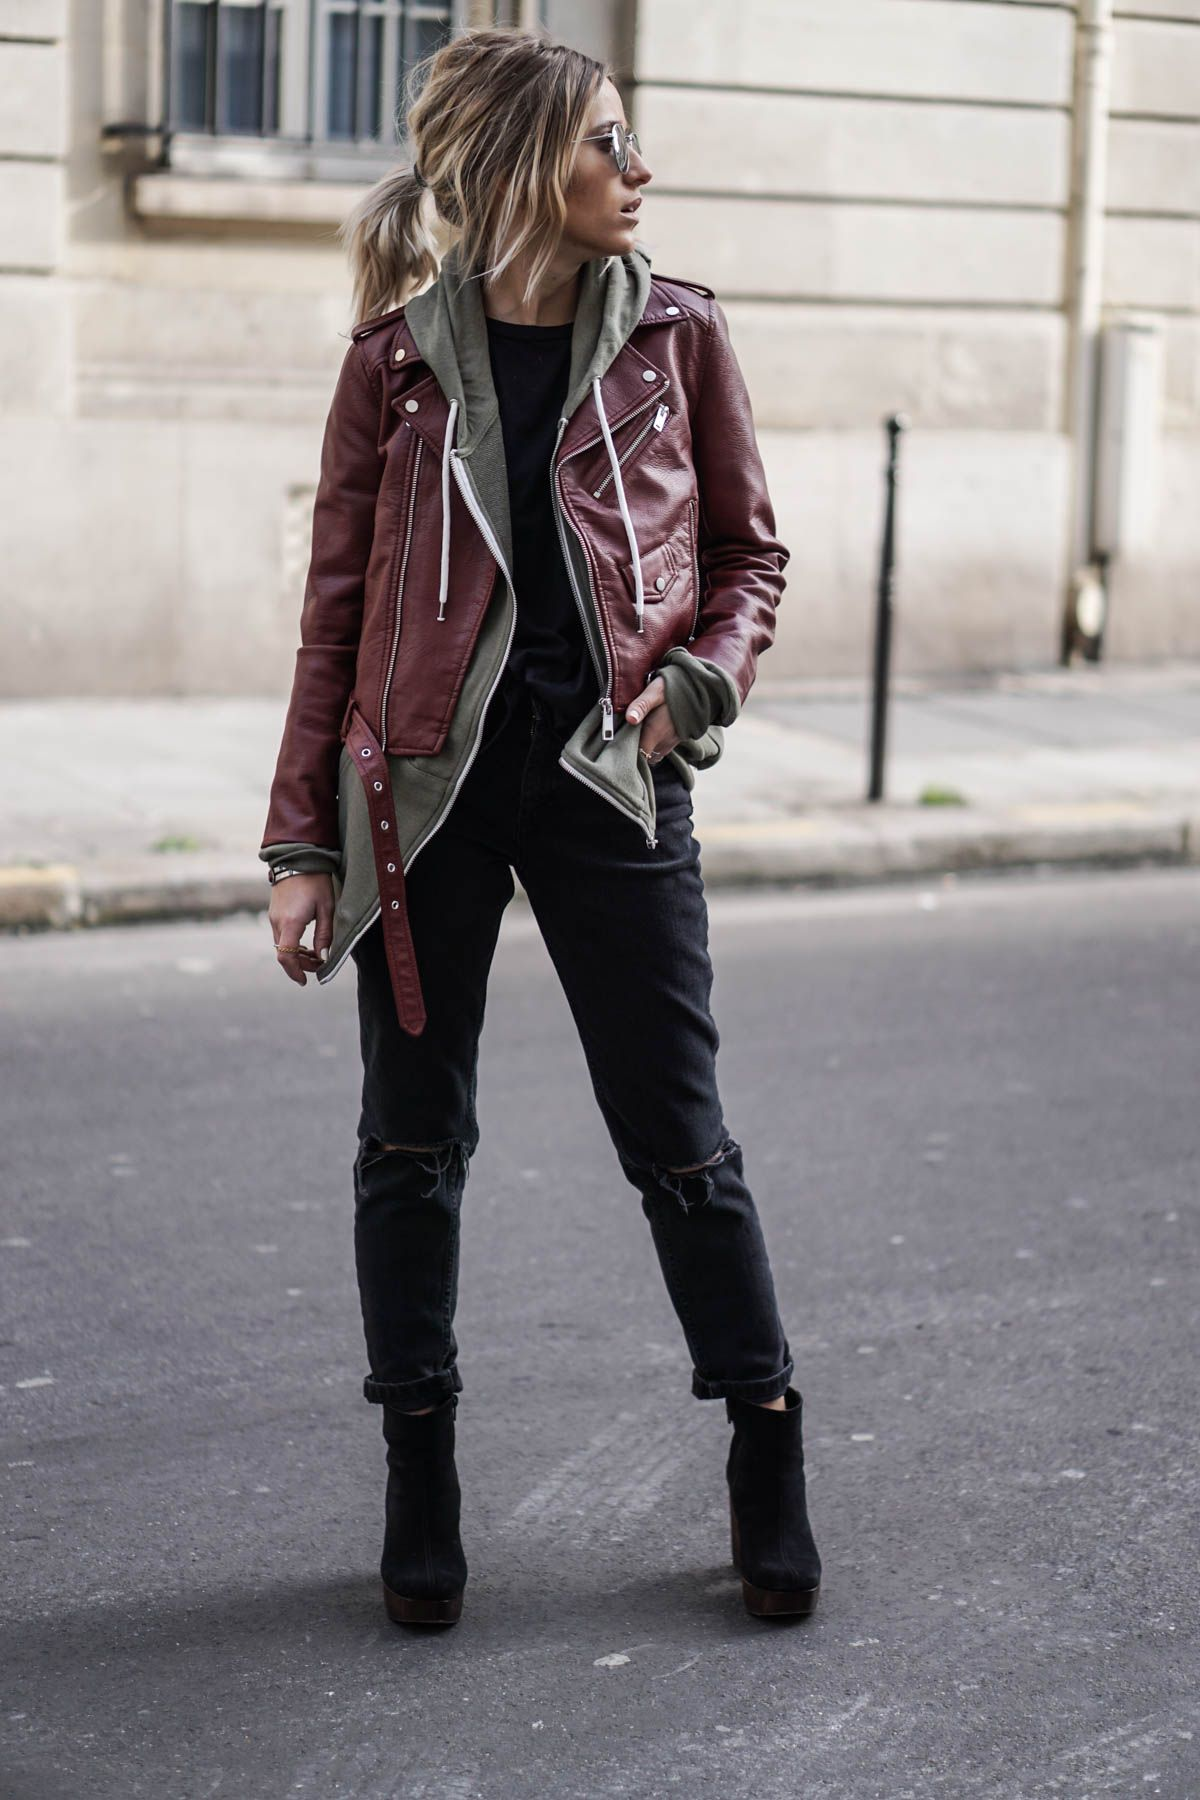 Cute Winter Outfits To Get You Inspired | Zara man jacket ...